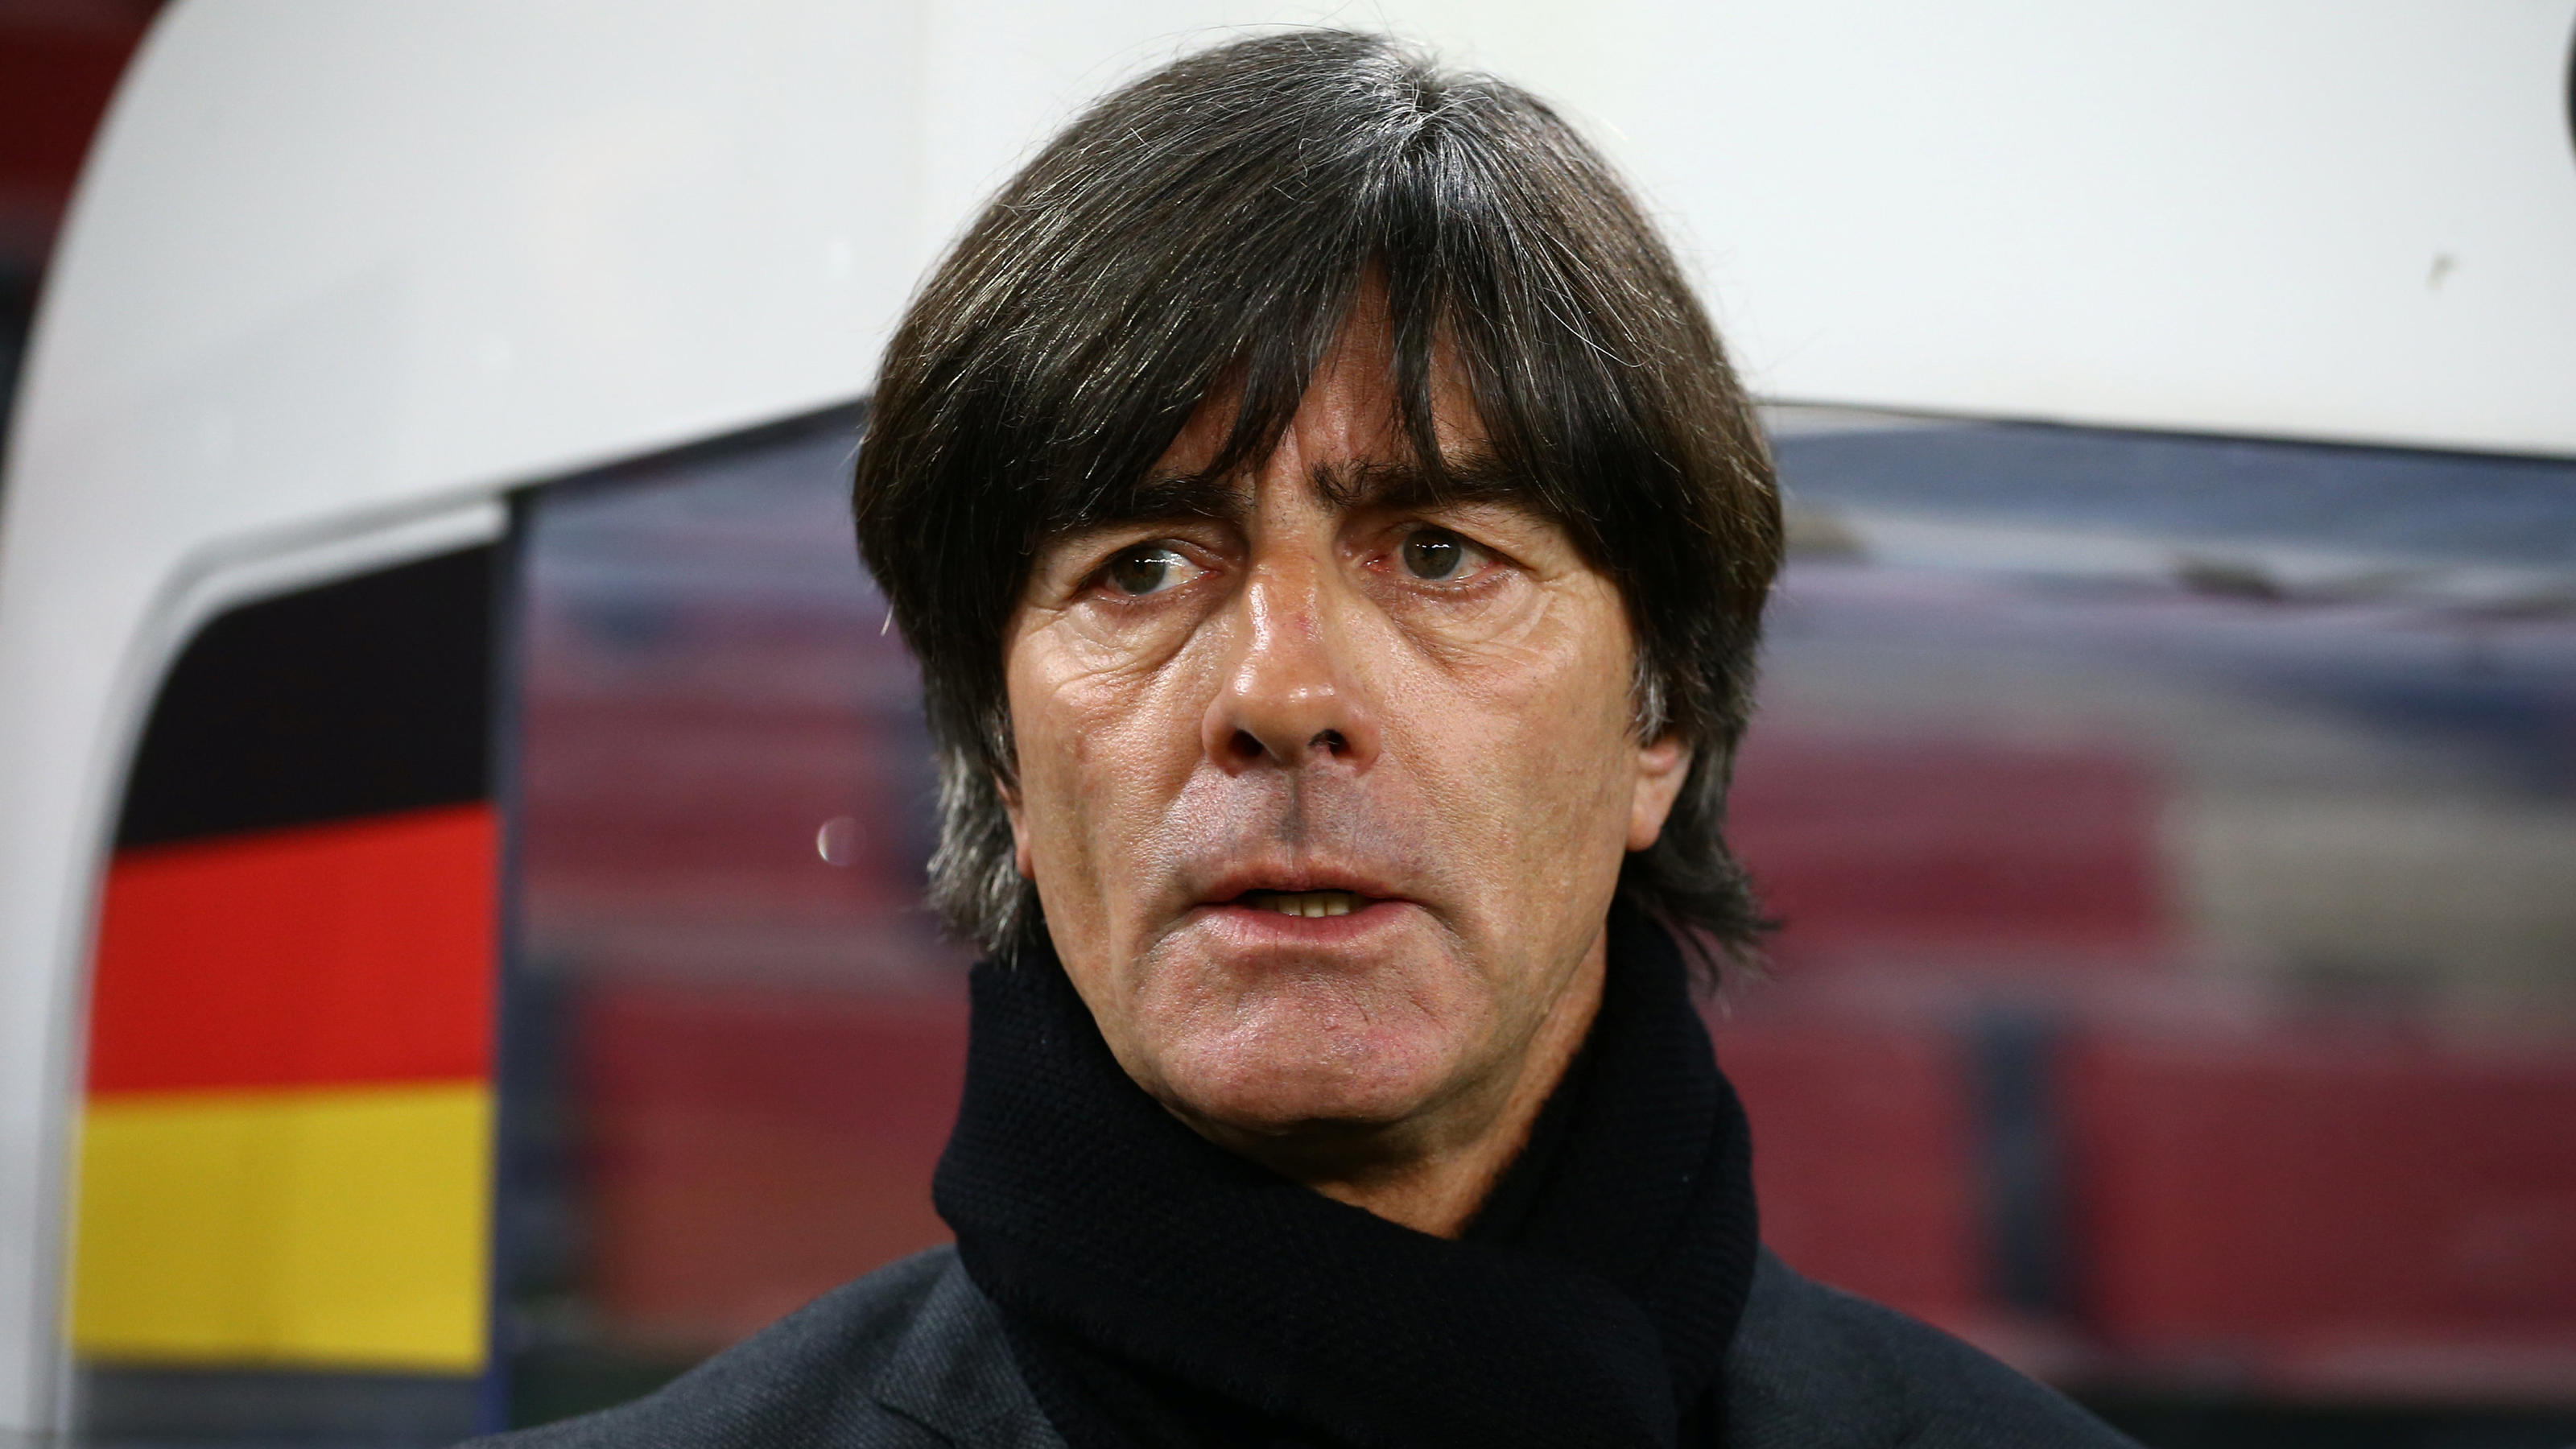 Soccer Football - International Friendly - Germany vs France - RheinEnergieStadion, Cologne, Germany - November 14, 2017   Germany coach Joachim Low before the match    REUTERS/Wolfgang Rattay